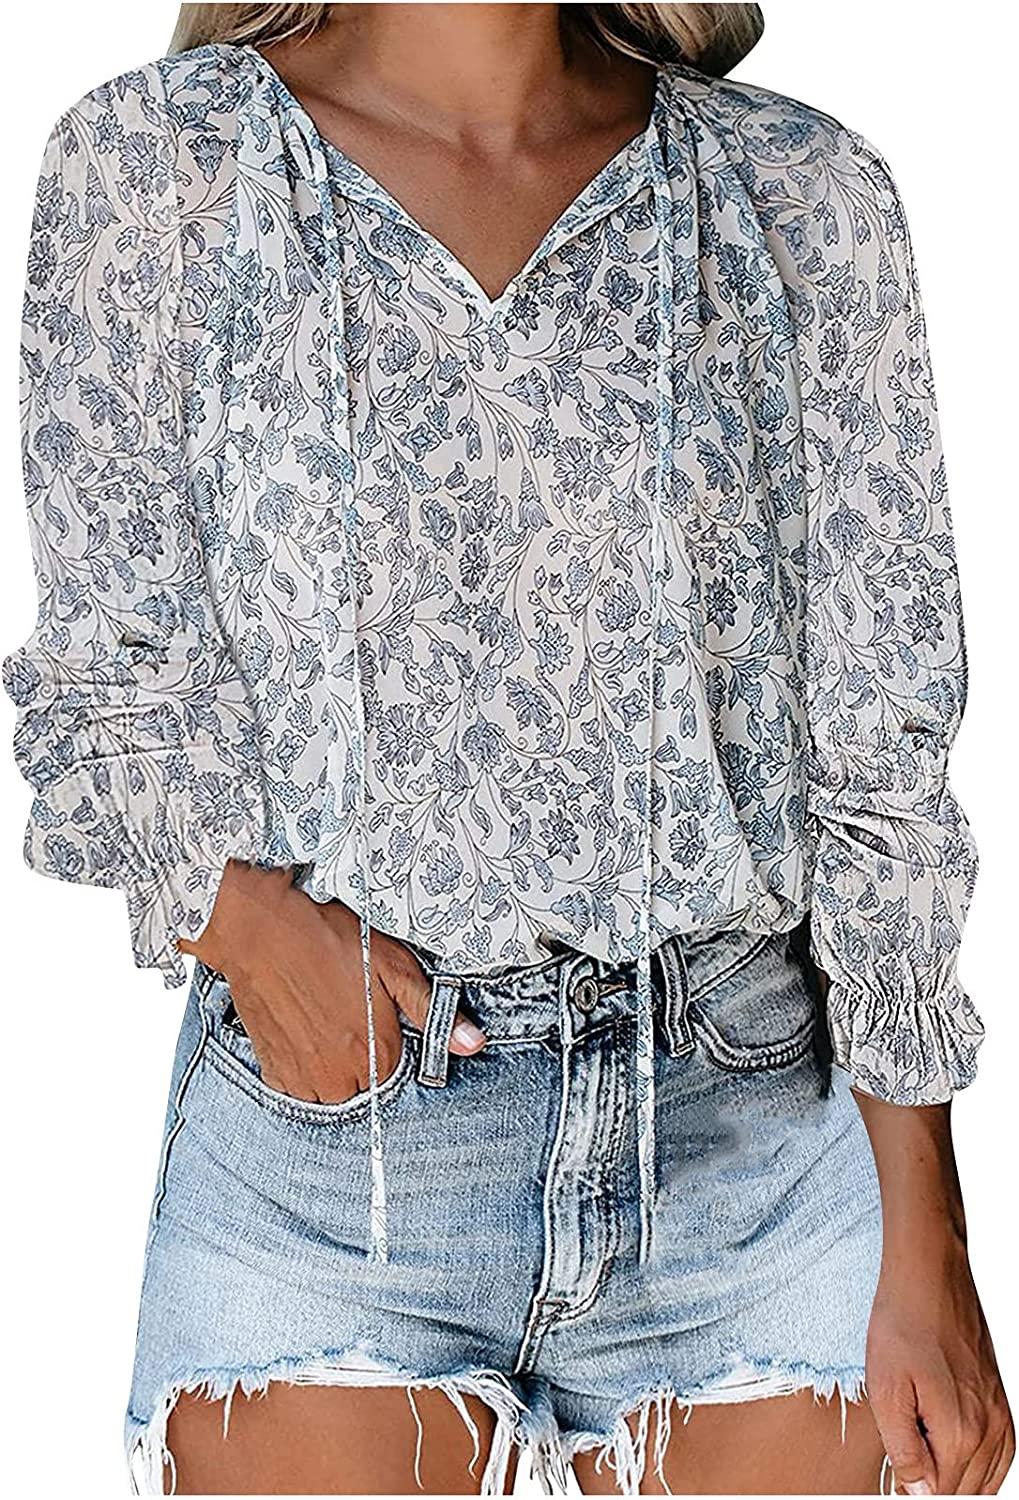 Womens Tops and Blouses V-Neck Floral Printing Casual Long Sleeve Shirt Loose Soft Comfy Pullover Lightweight Breathable